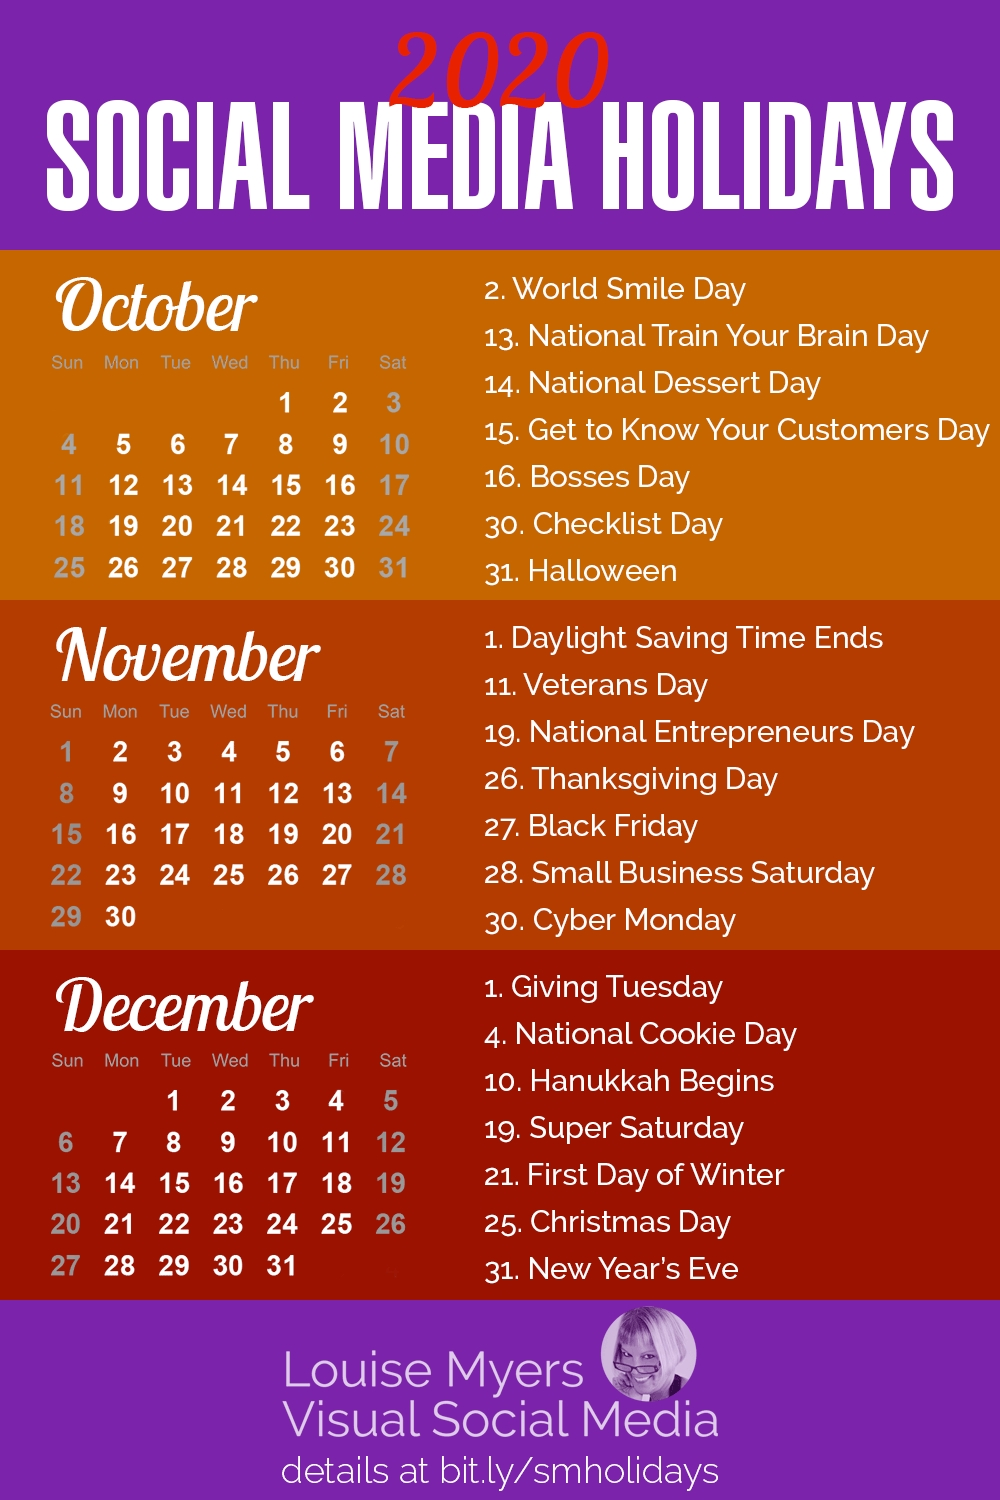 84 Social Media Holidays You Need In 2020: Indispensable! in Special Calendar Days In 2020